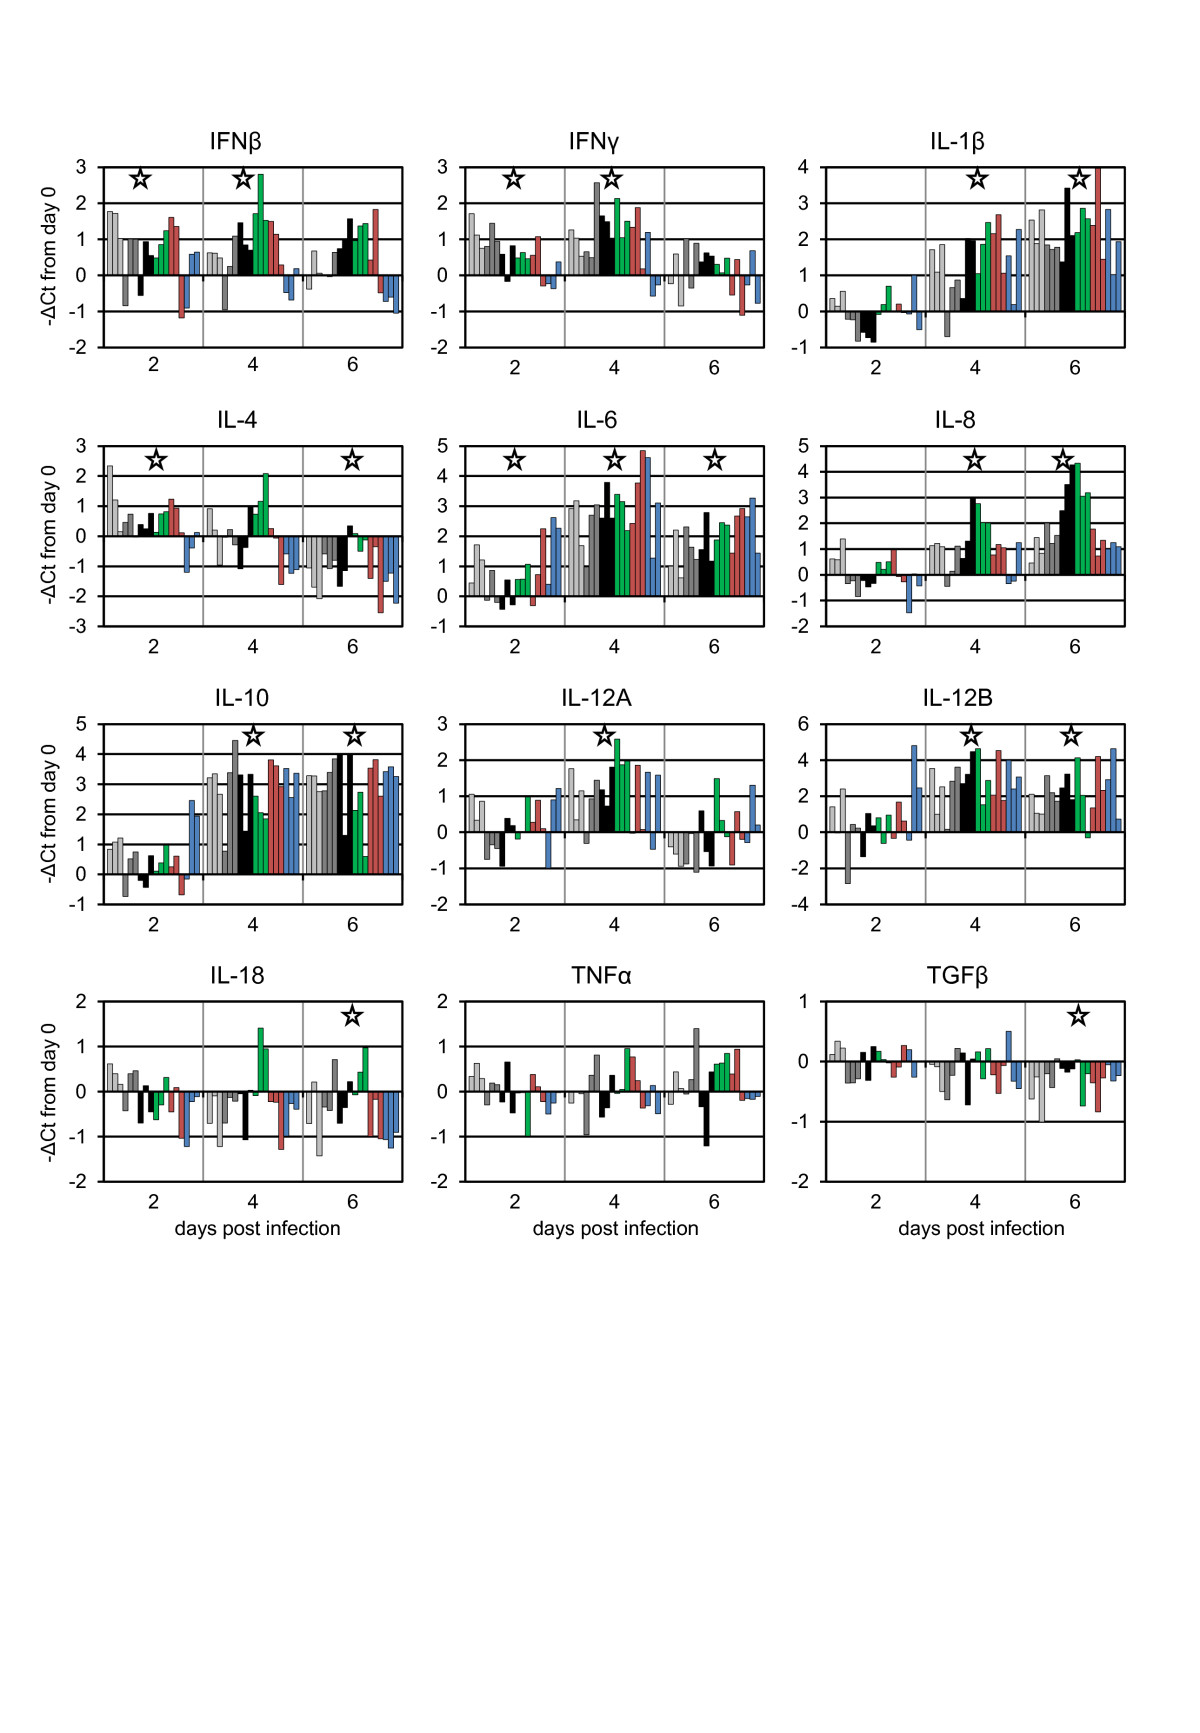 https://static-content.springer.com/image/art%3A10.1186%2F1297-9716-45-22/MediaObjects/13567_2013_Article_346_Fig6_HTML.jpg